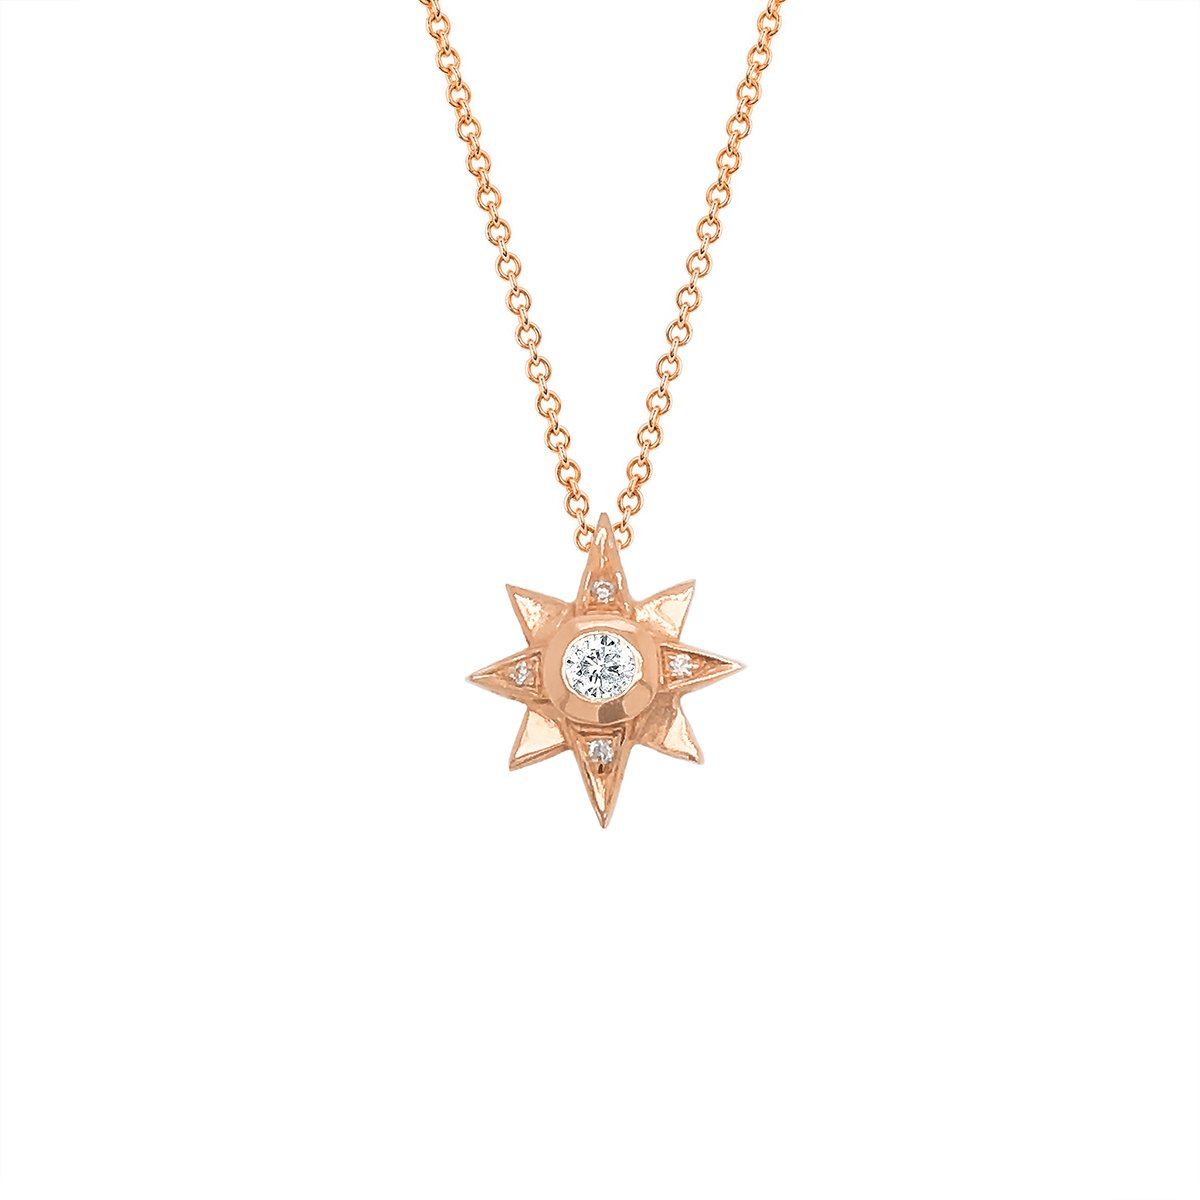 North Star Diamond Necklace